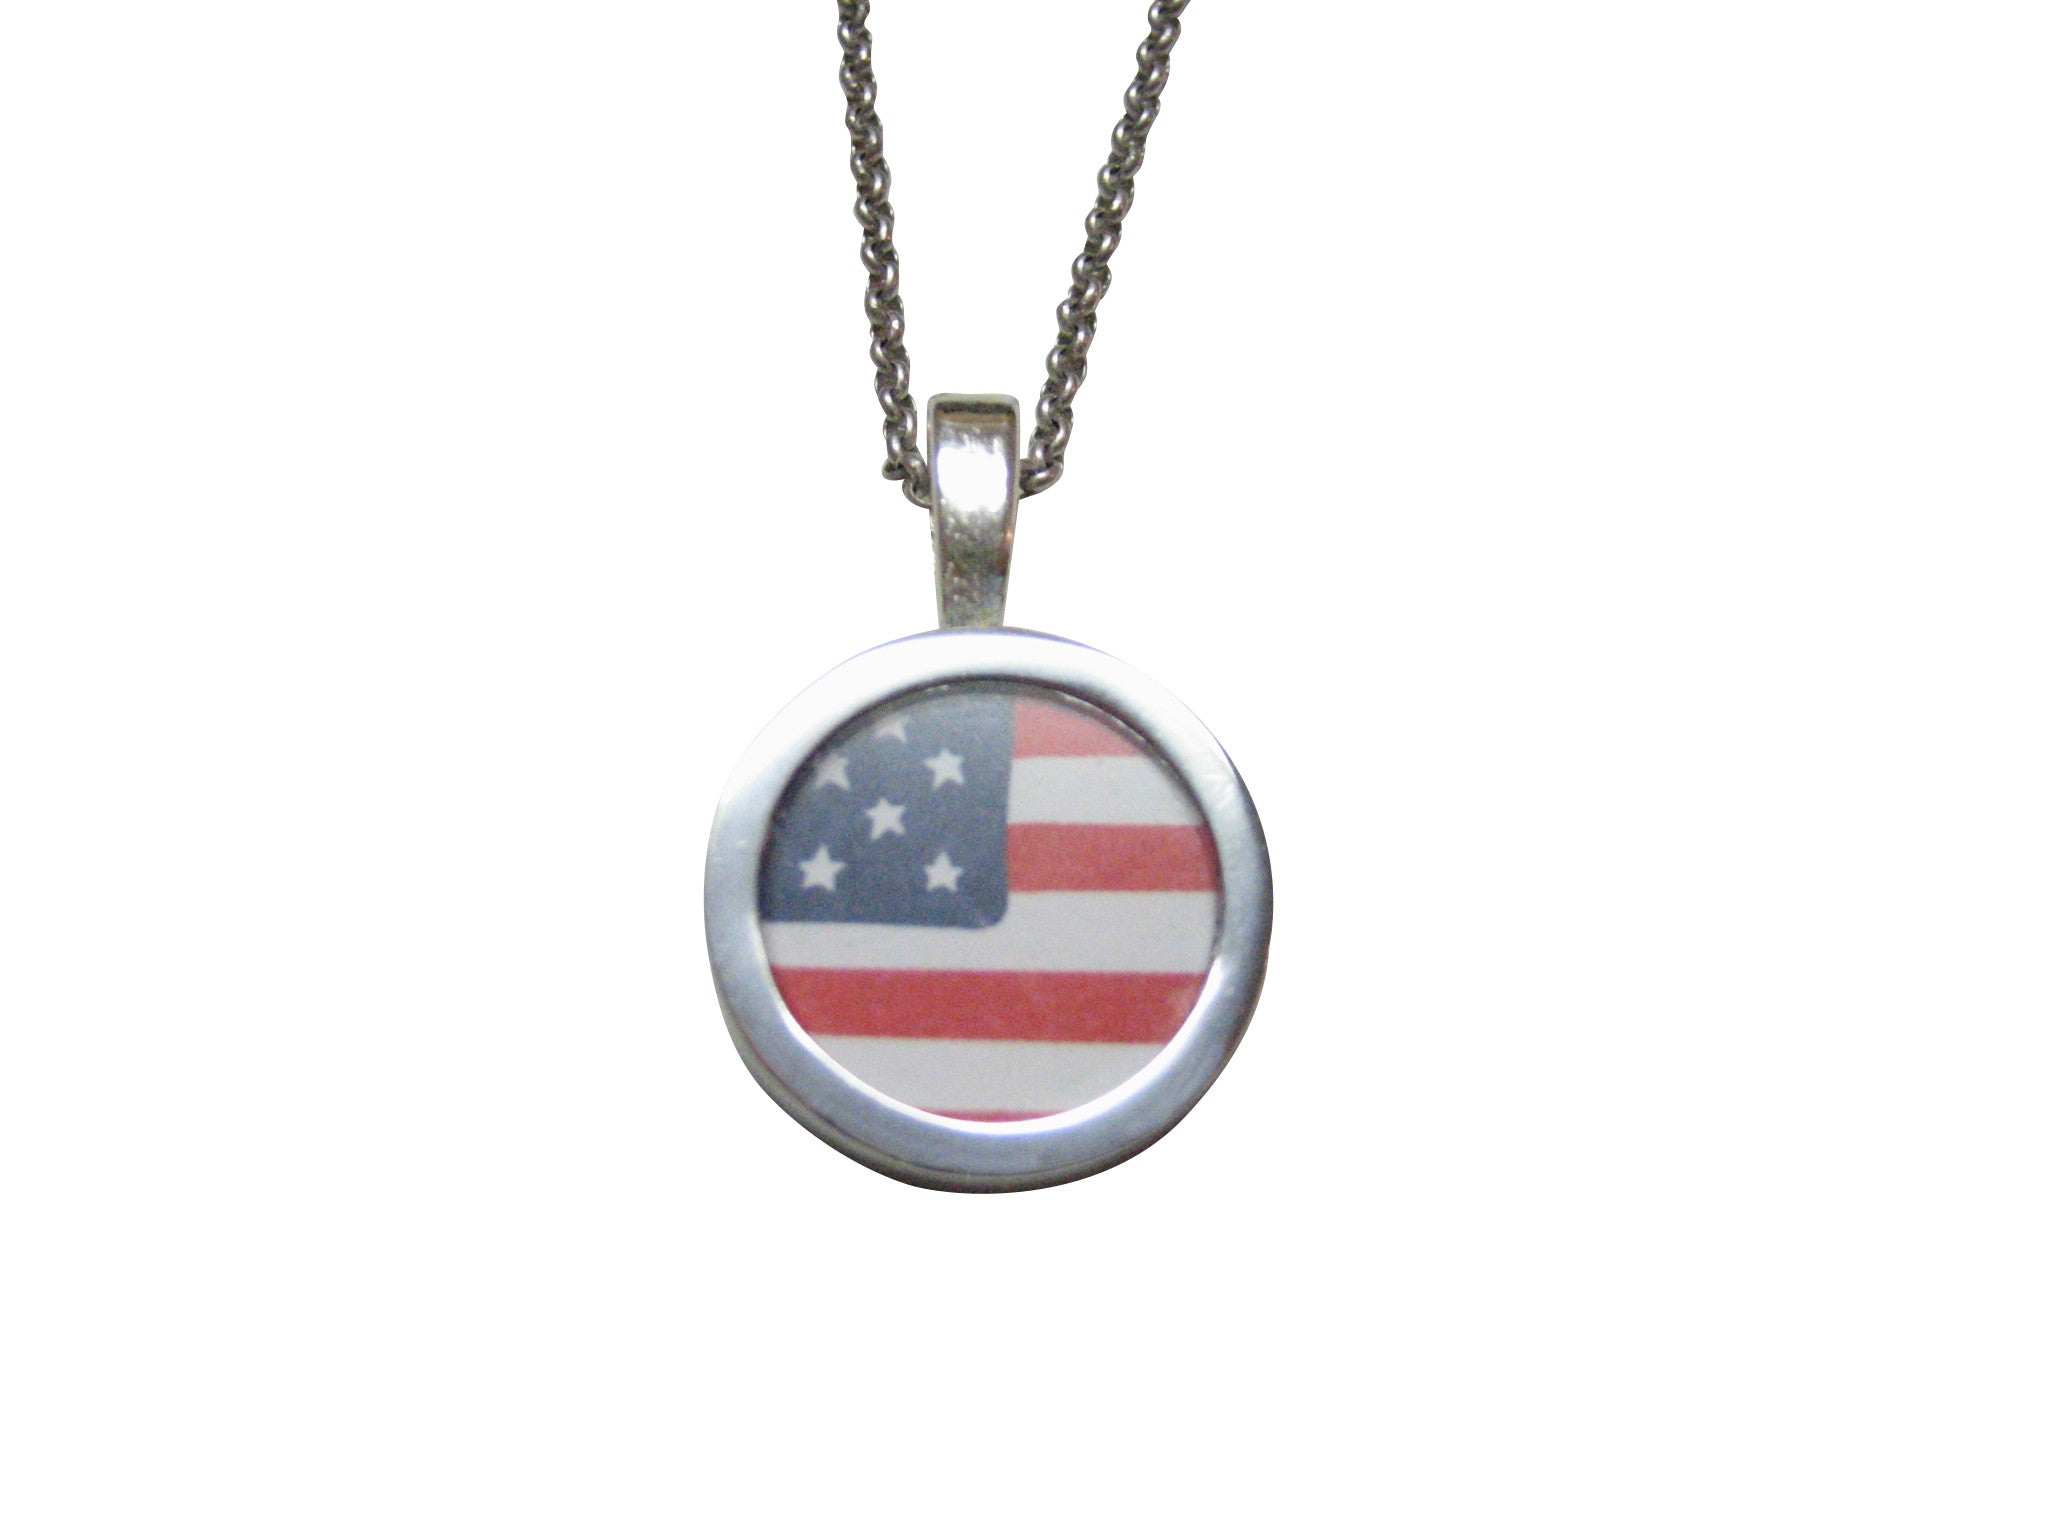 in tag dog patriot my crystal item necklaces silver freedom independence star shape pendant patriotic usa dante men tone stars stripes gift of shaped and necklace day american jewelry july from flag